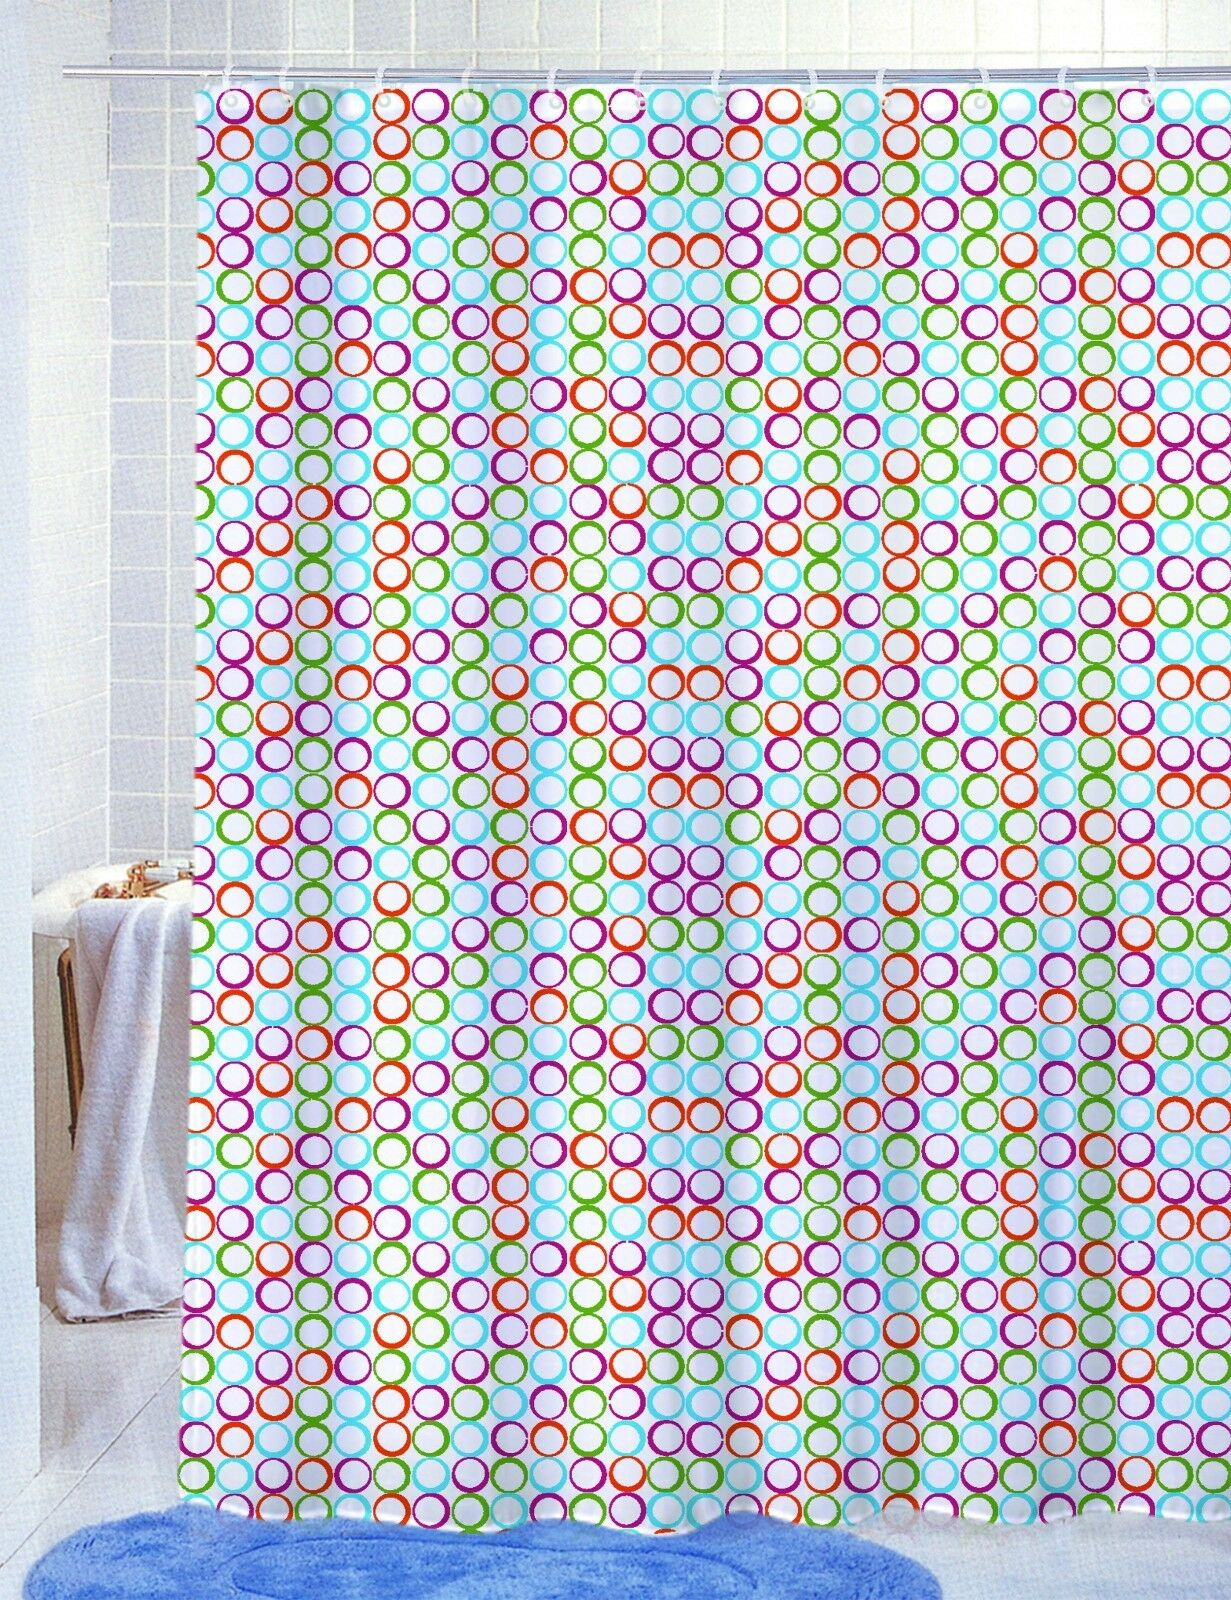 PVC Free PEVA Vinyl Printed Shower Curtain 70x72 Fun Modern Colorful Styles EBay